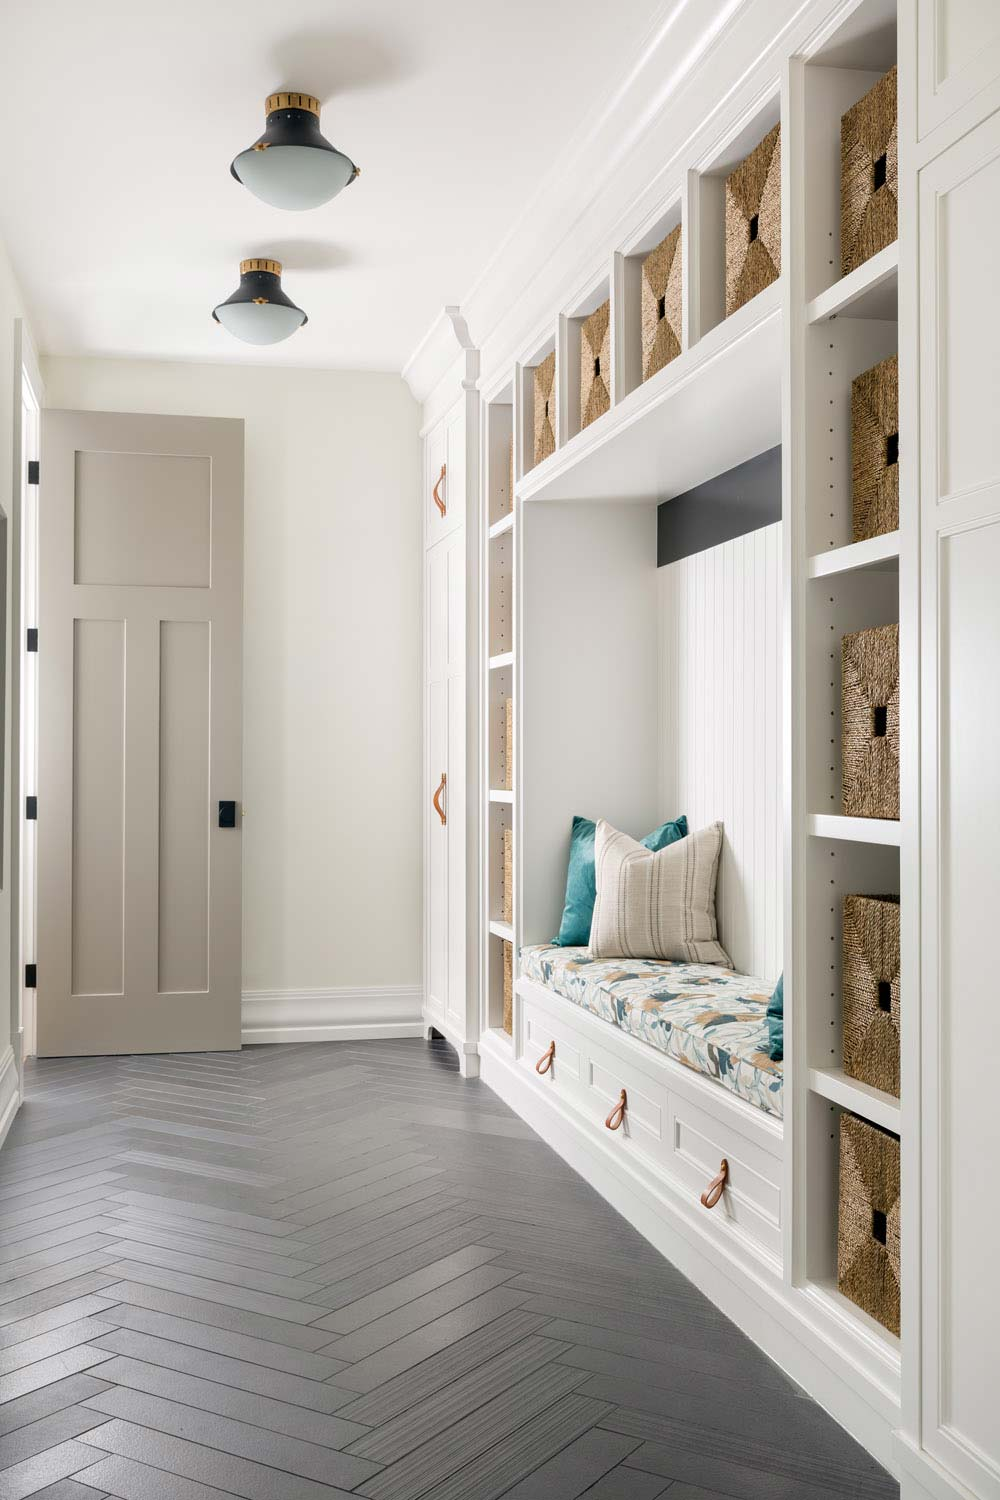 Here Is A Mudroom By Aly Velji That Has An Amazing Color Scheme And Unique Take On Drop Zone Built Ins The Dark Floor Nice Modern Vibe